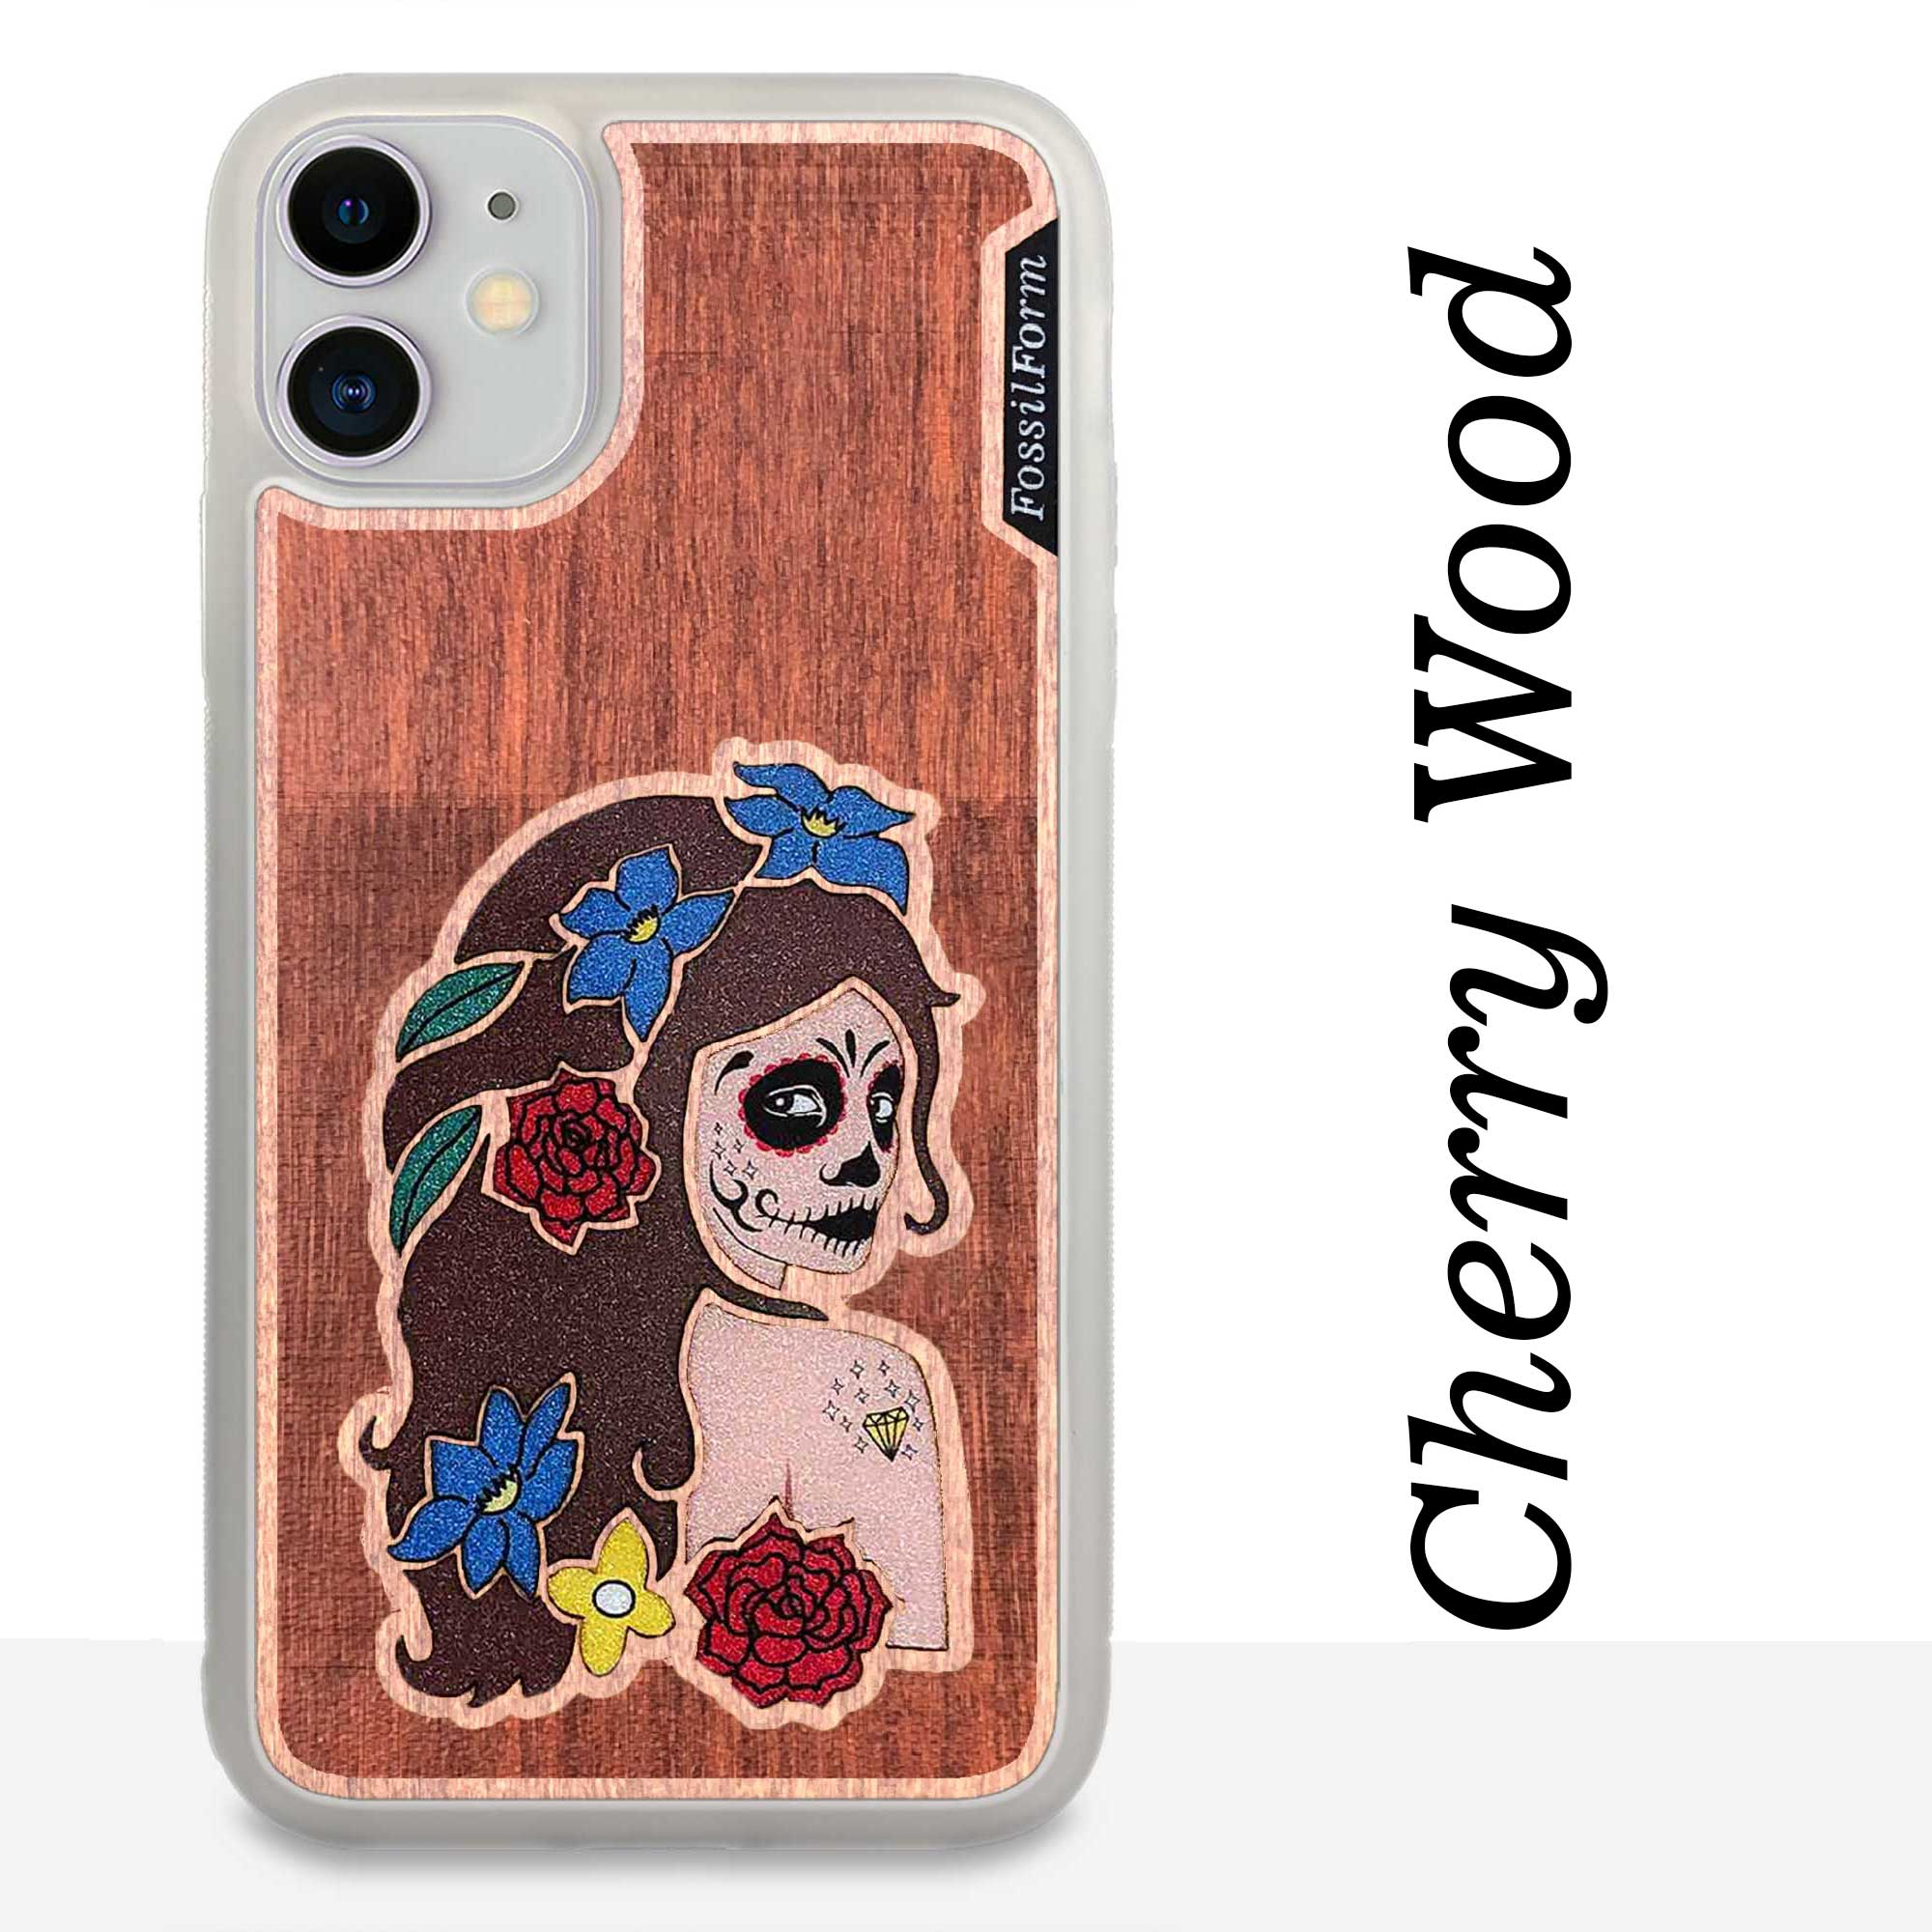 Day of the Dead Girl - Engraved Wood & Resin Case - White